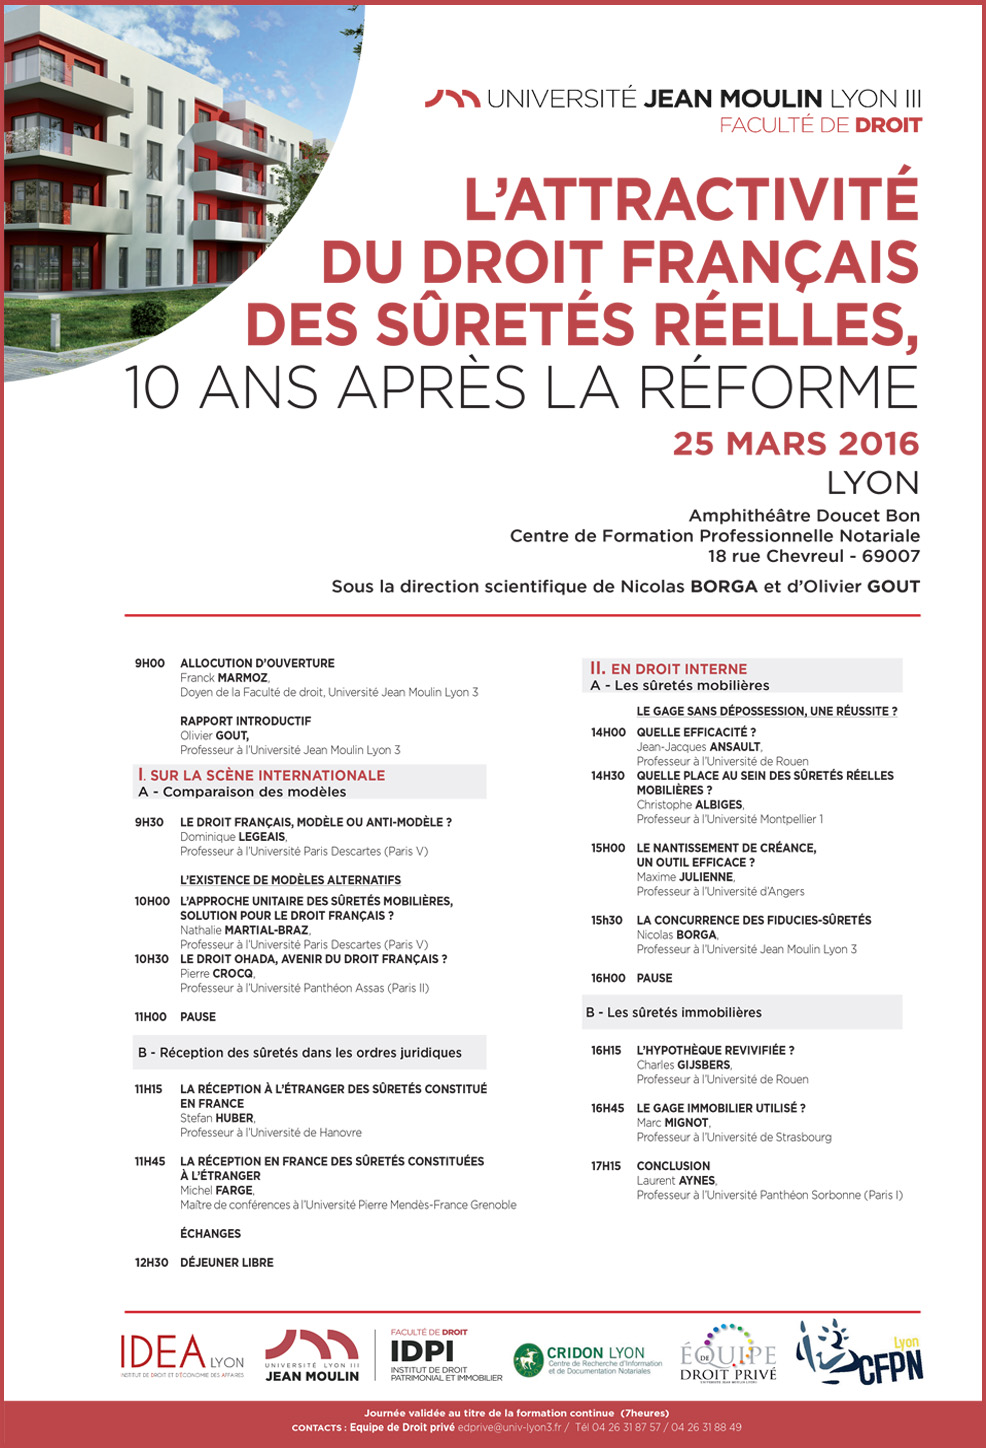 colloque 25 mars 2016